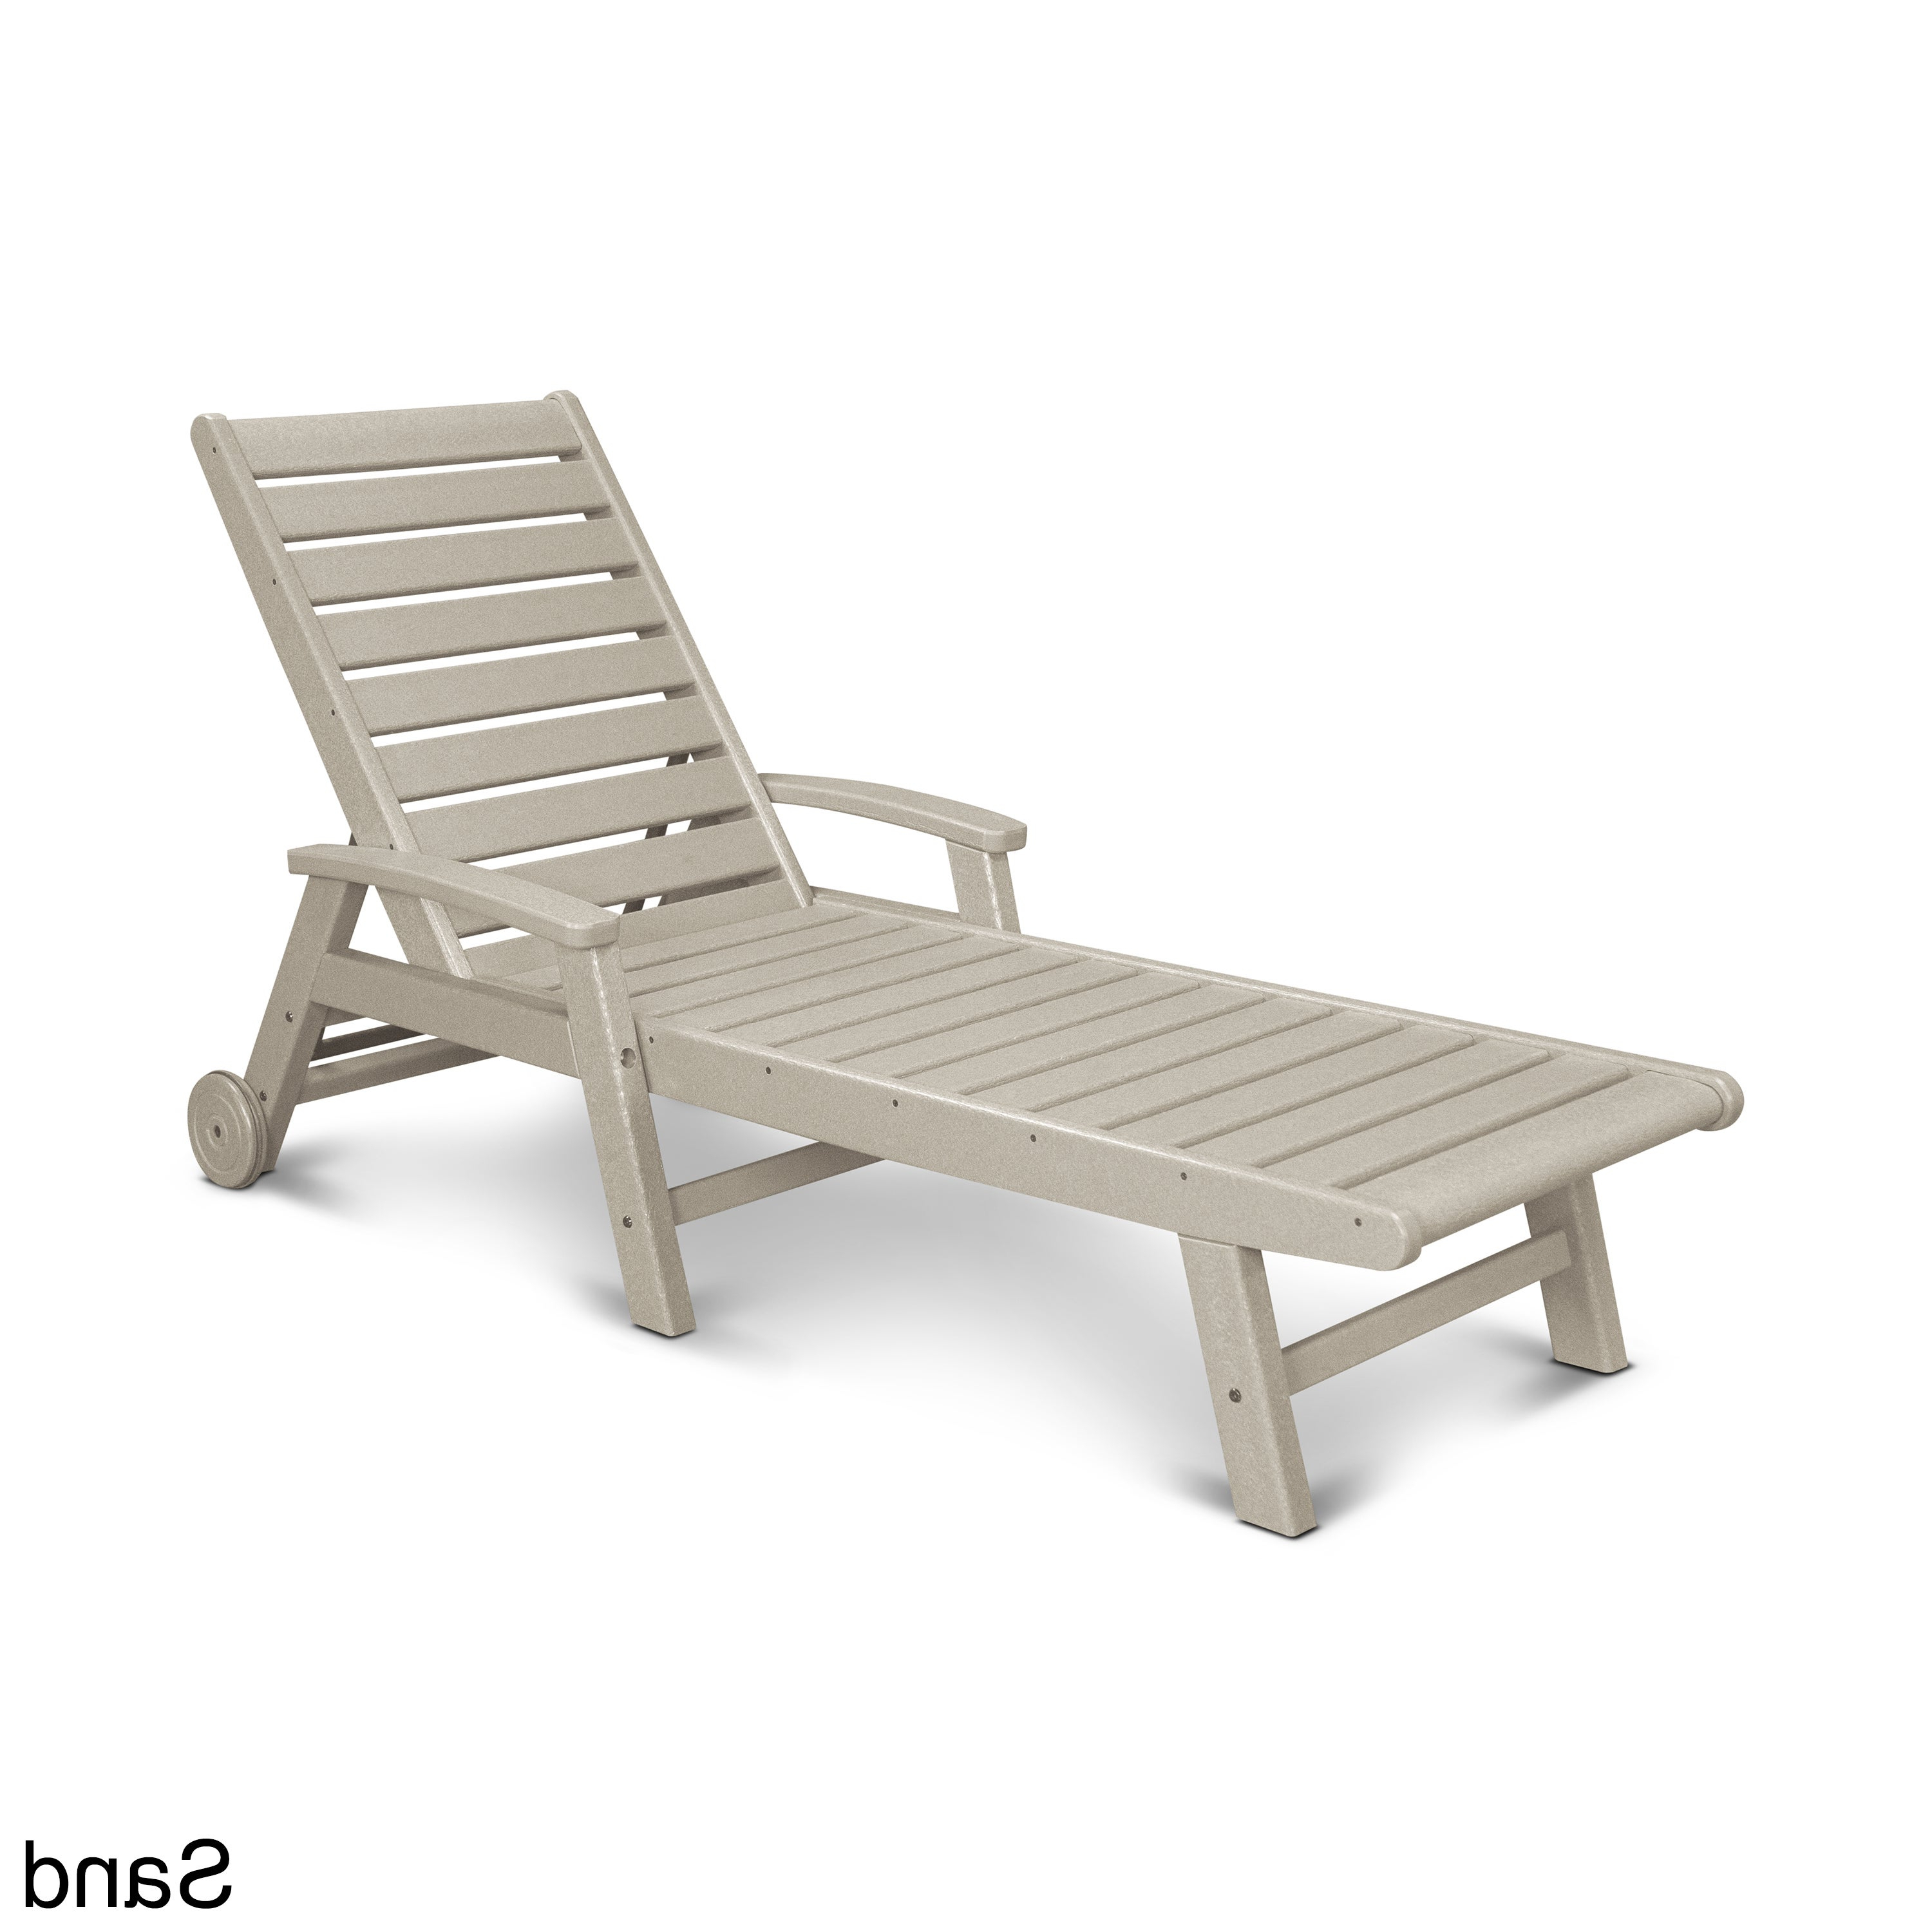 Widely Used Polywood® Signature Outdoor Chaise Lounge With Wheels, Sw2280 Regarding Nautical 3 Piece Outdoor Chaise Lounge Sets With Wheels And Table (View 15 of 25)